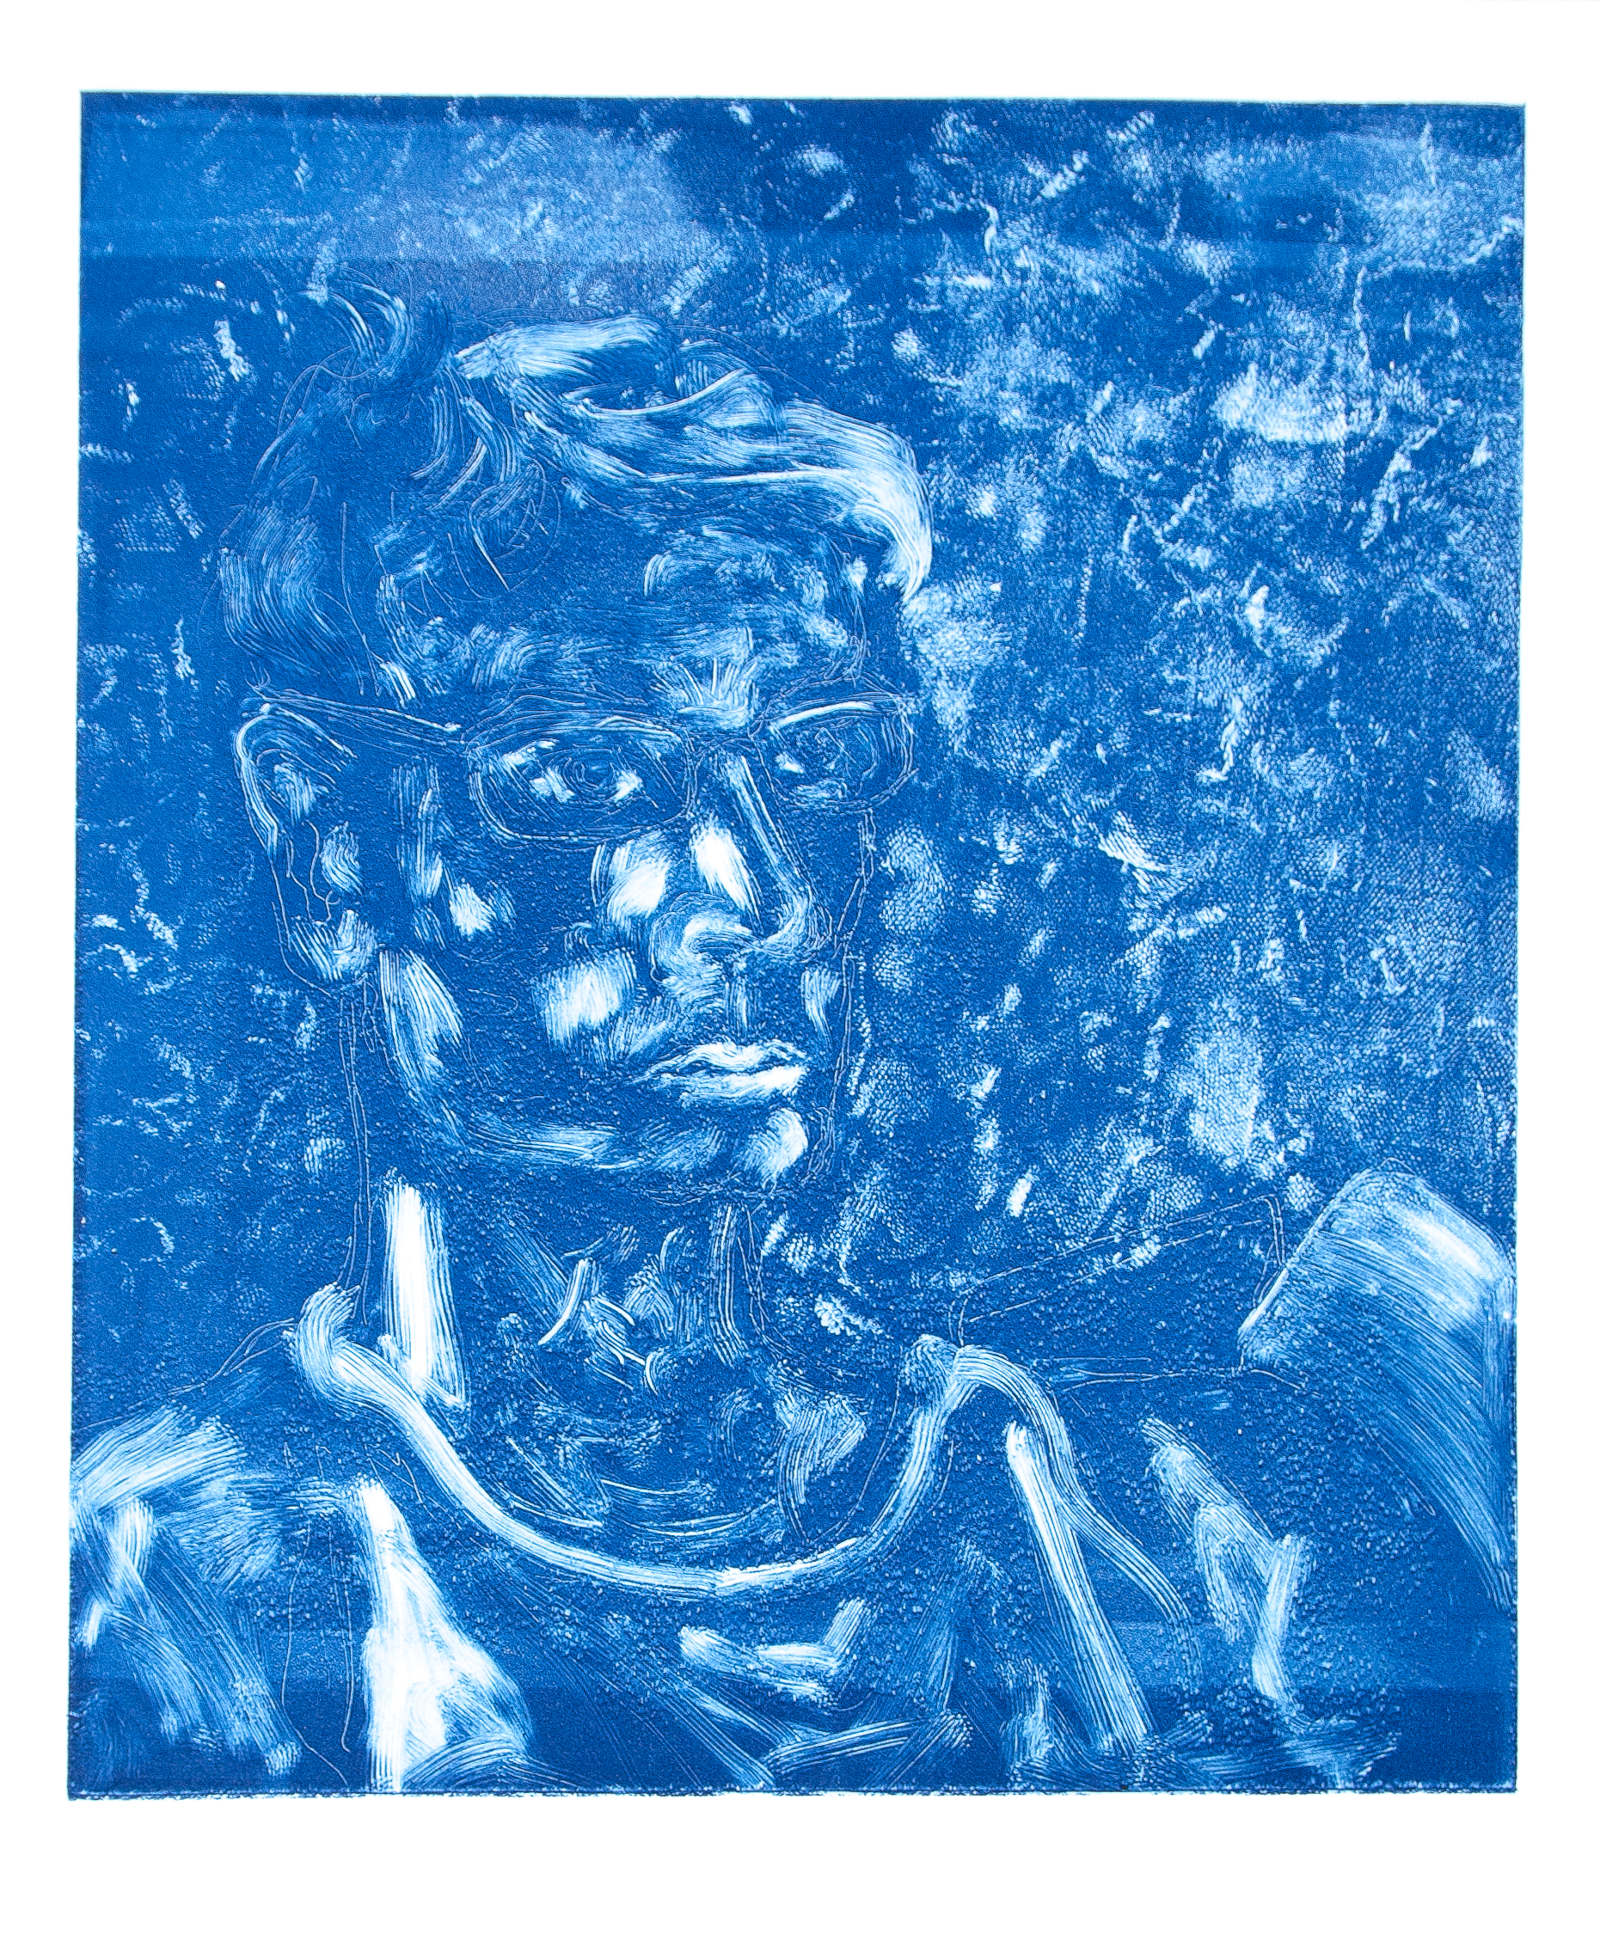 Blue-Boy--Monoprint--35x29.5cm_1600_c.jpg